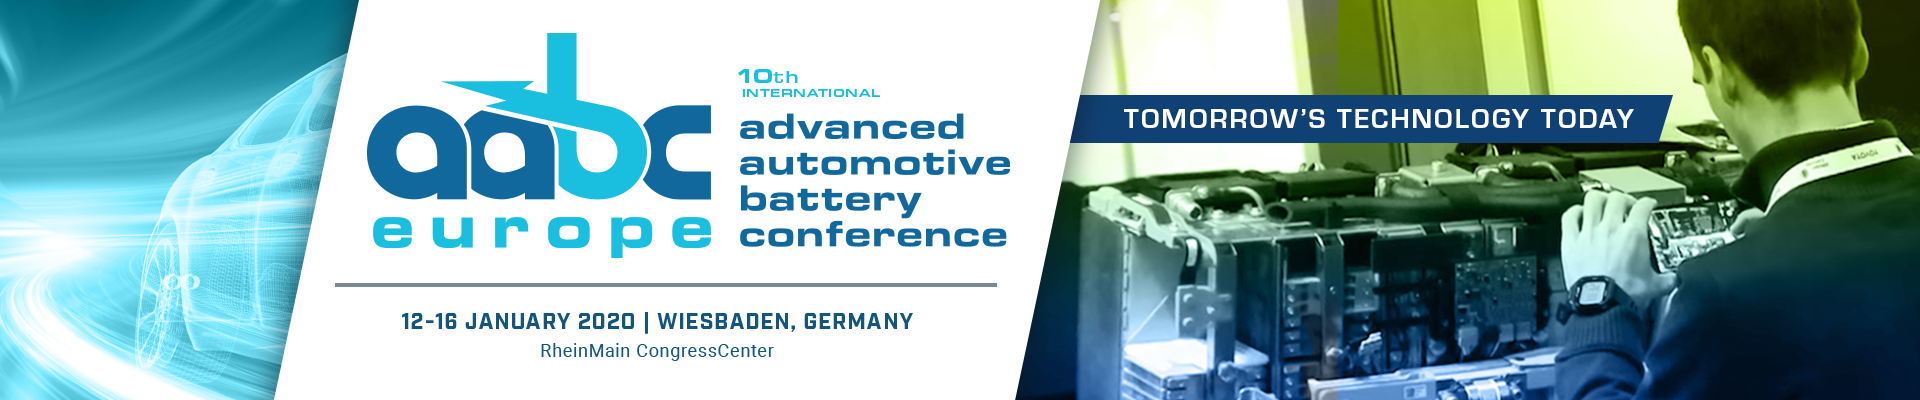 AABC Europe 2019 - Advanced Automotive Battery Conference Europe